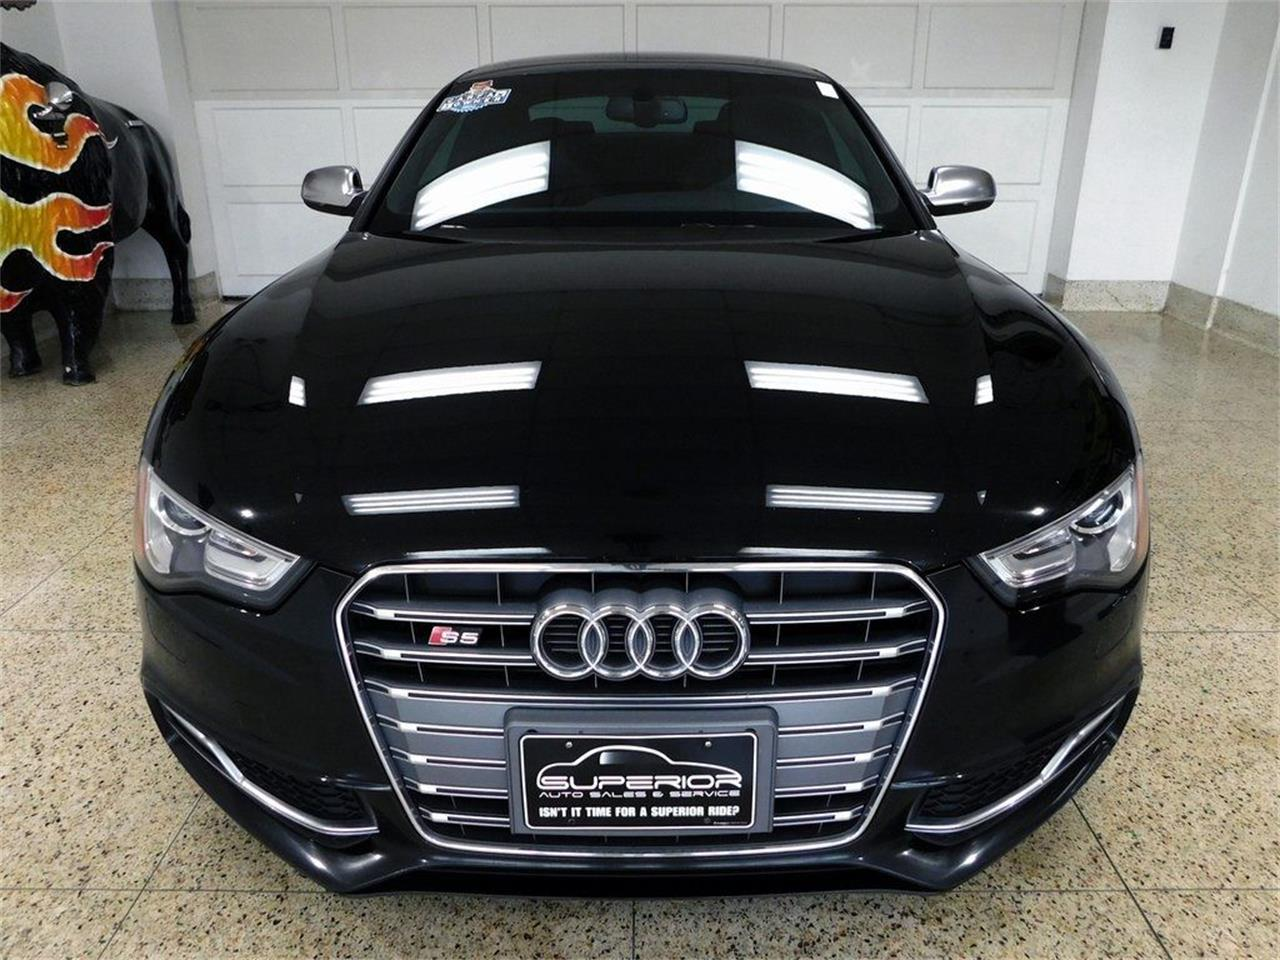 2016 Audi S5 (CC-1296701) for sale in Hamburg, New York